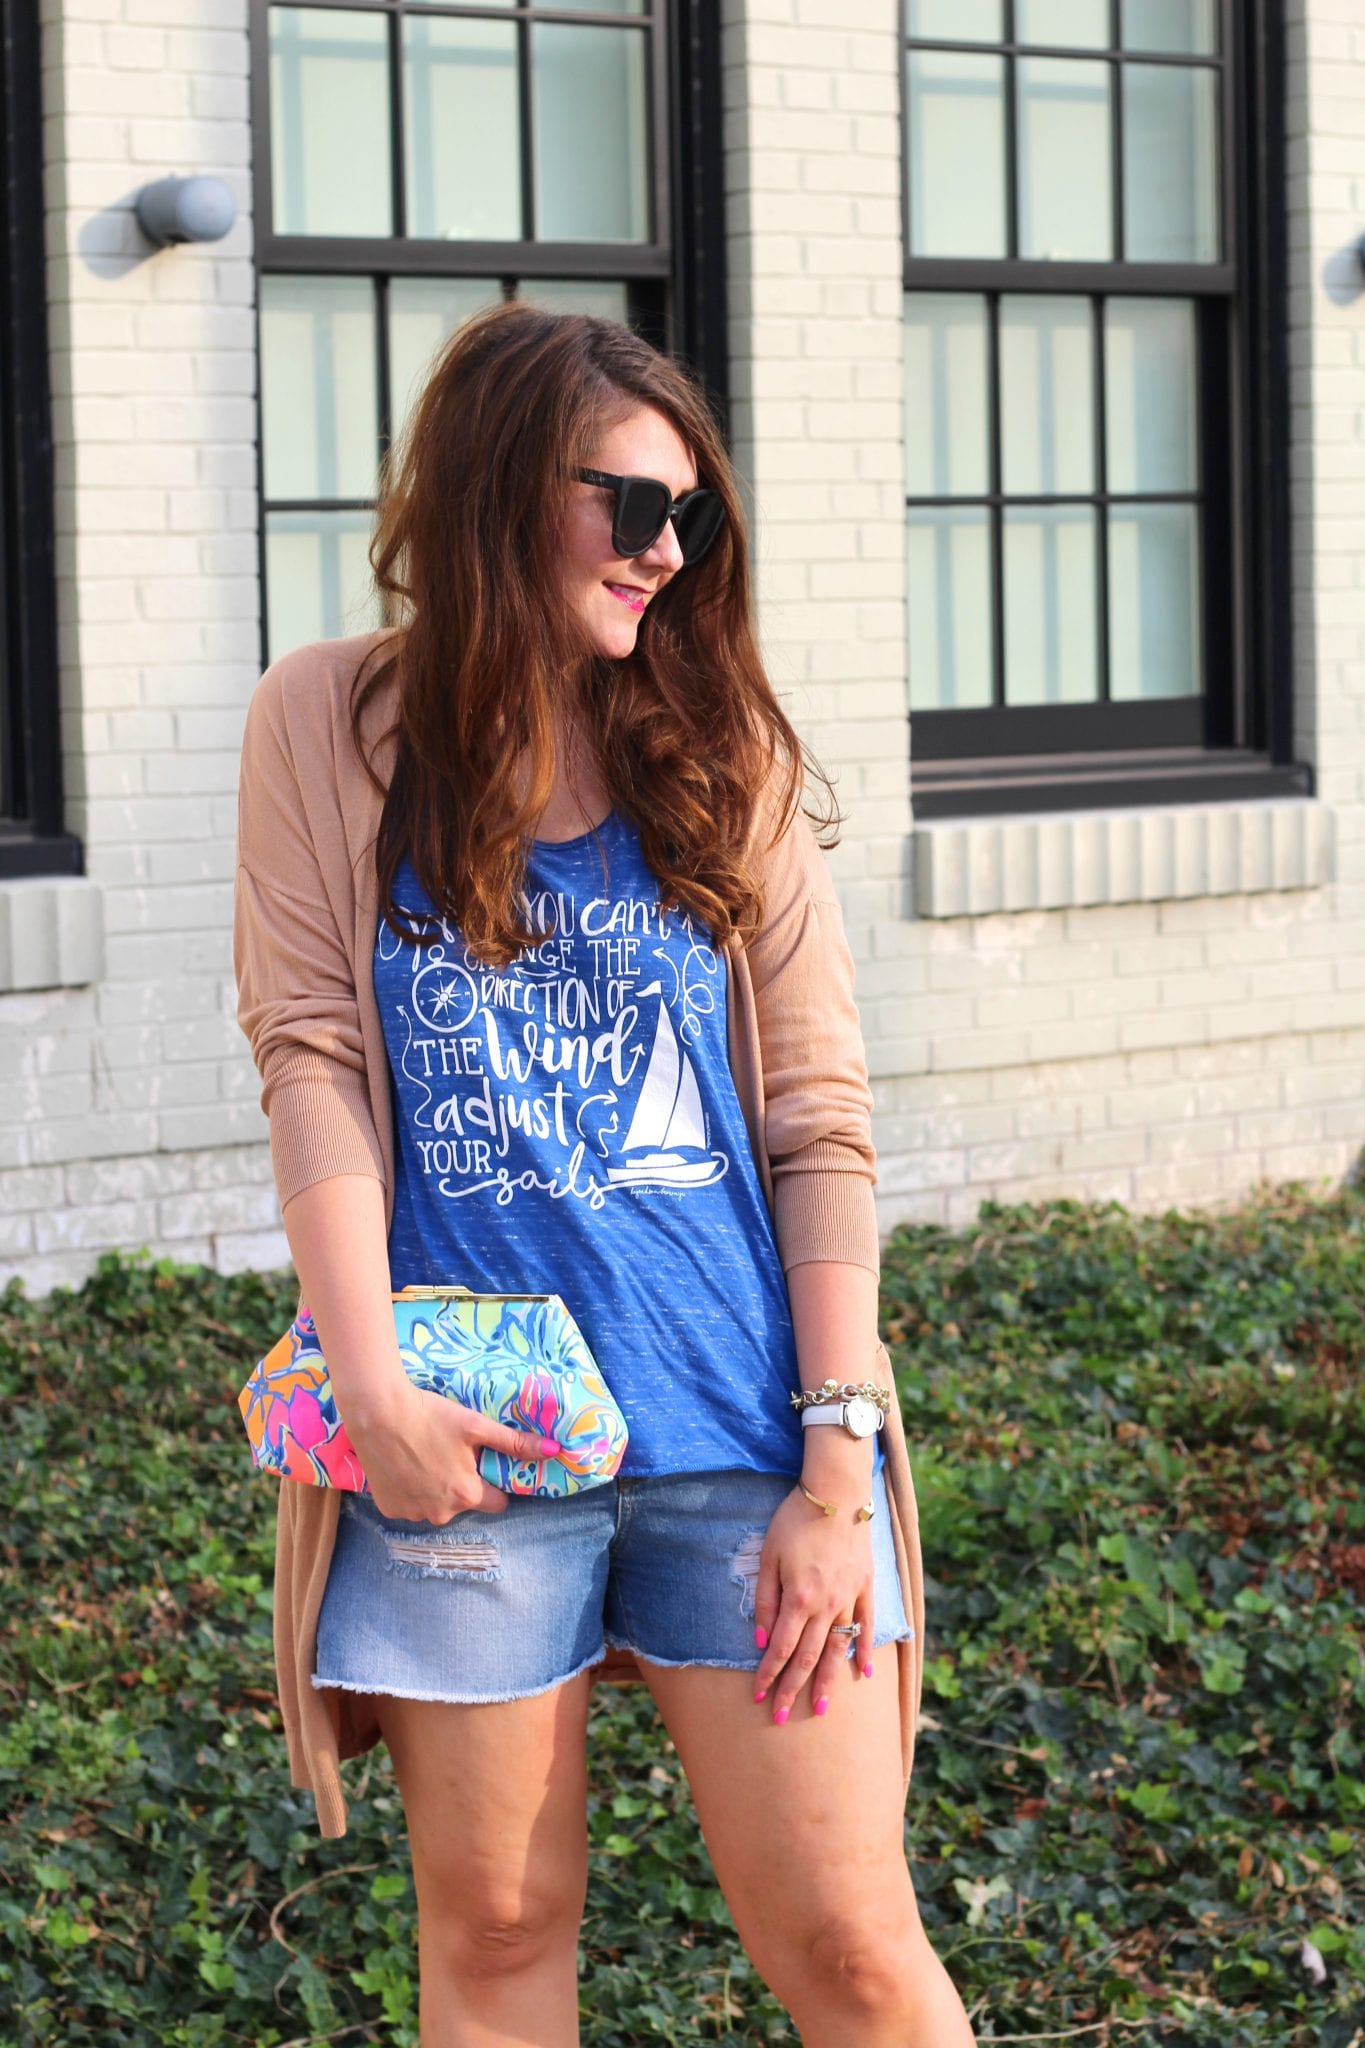 How to style an inspirational tee